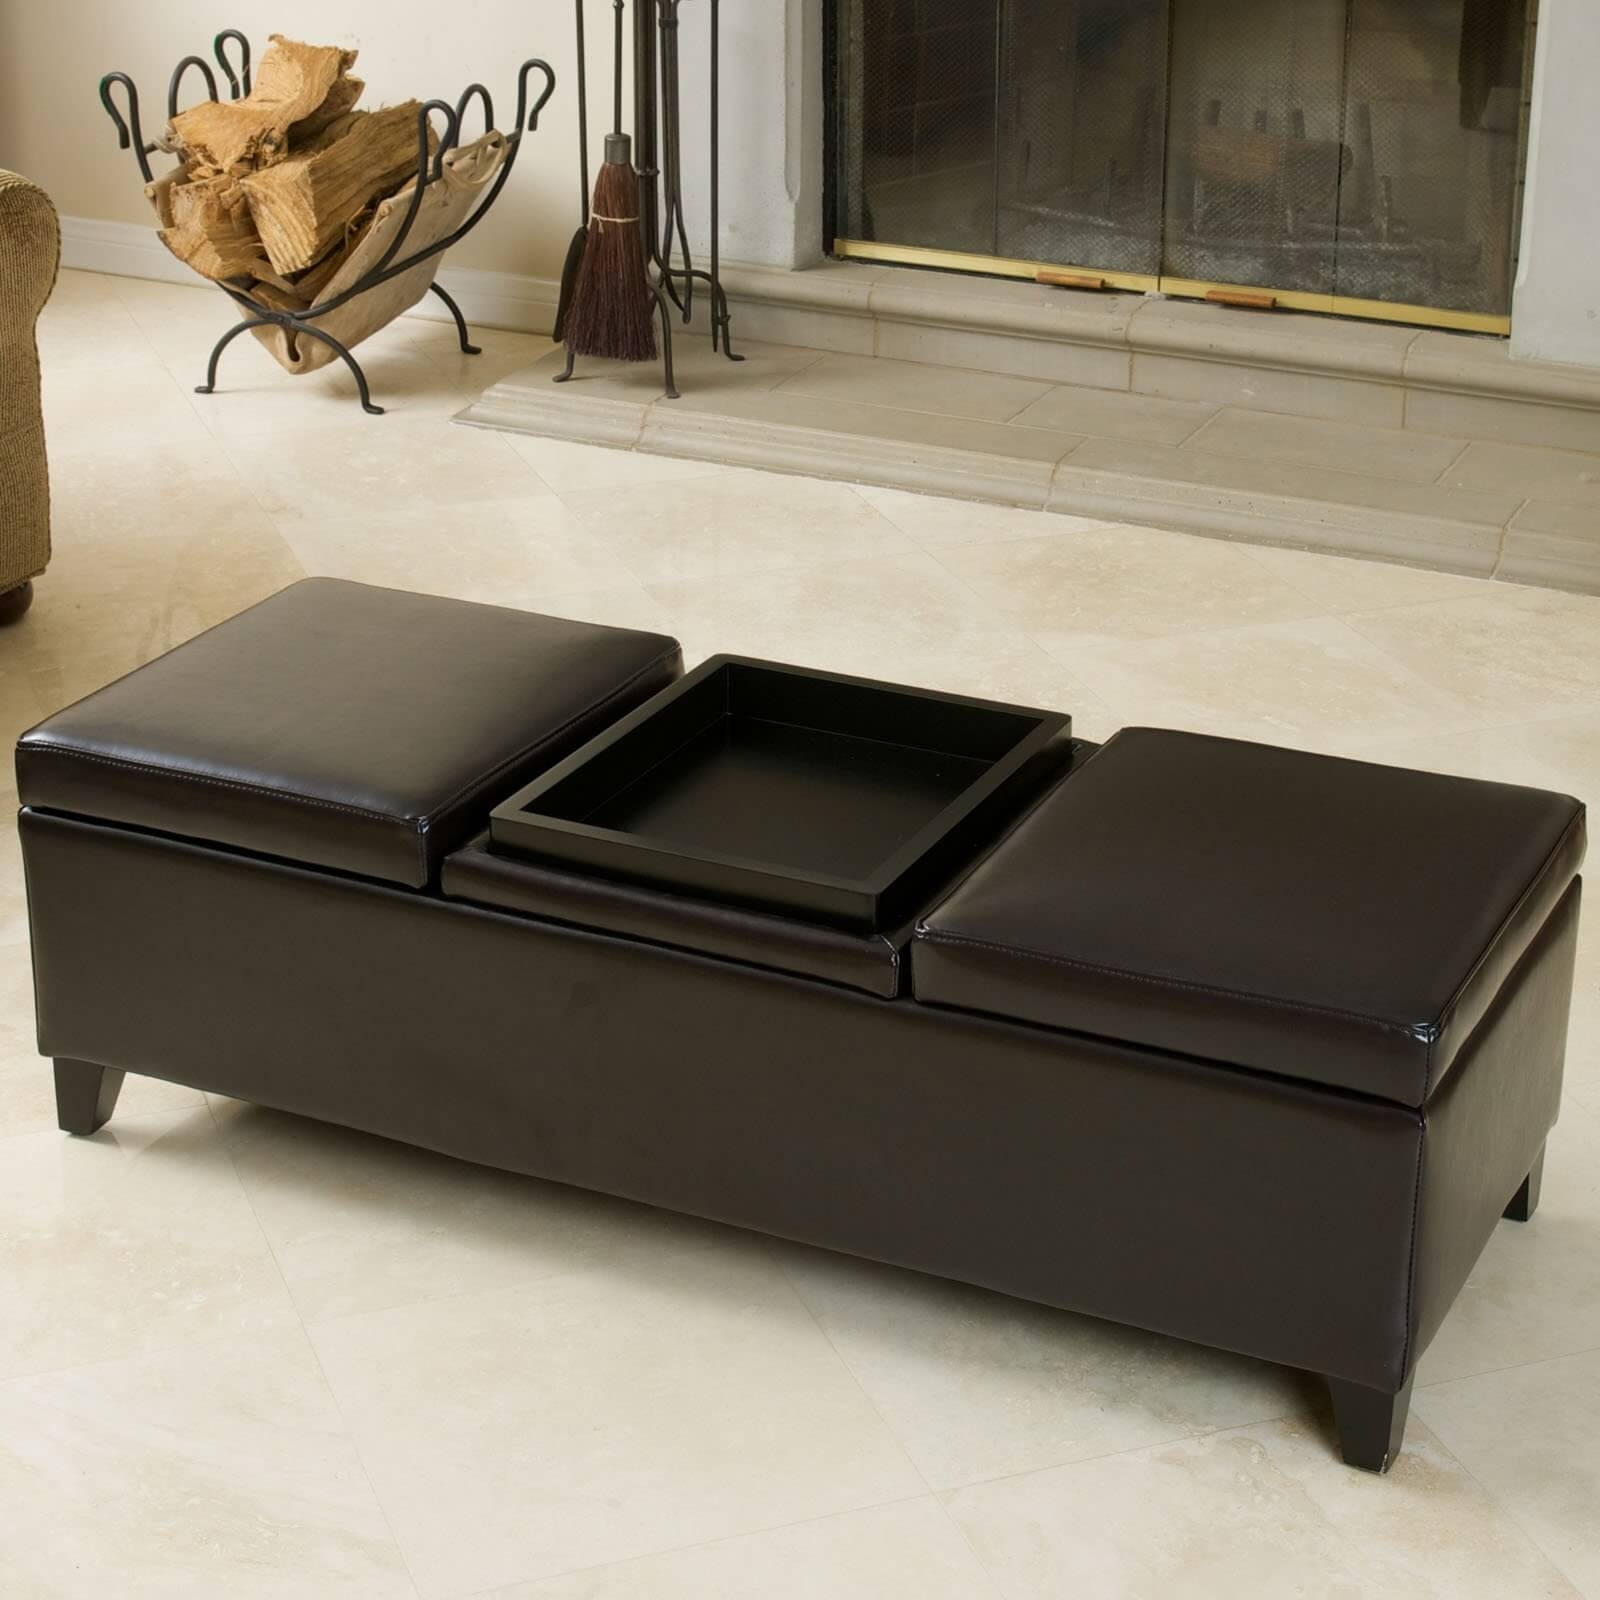 36 Top Brown Leather Ottoman Coffee Tables In Brown Leather Ottoman Coffee Tables (View 3 of 30)